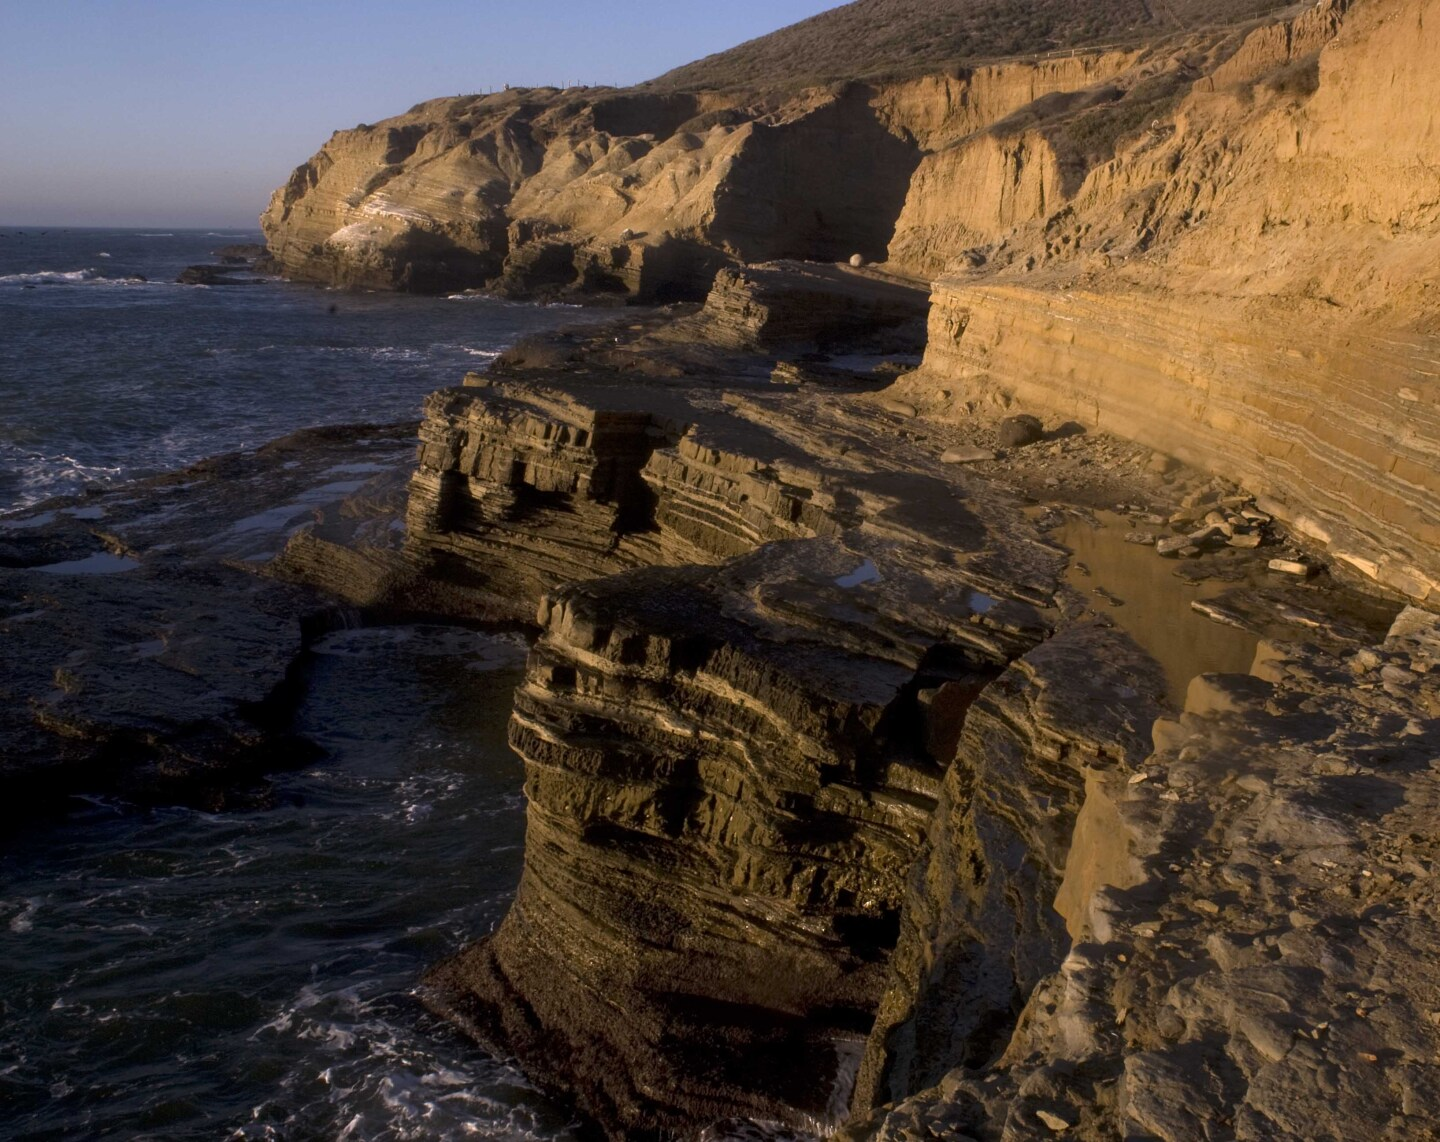 View of sandstone cliffs above the ocean